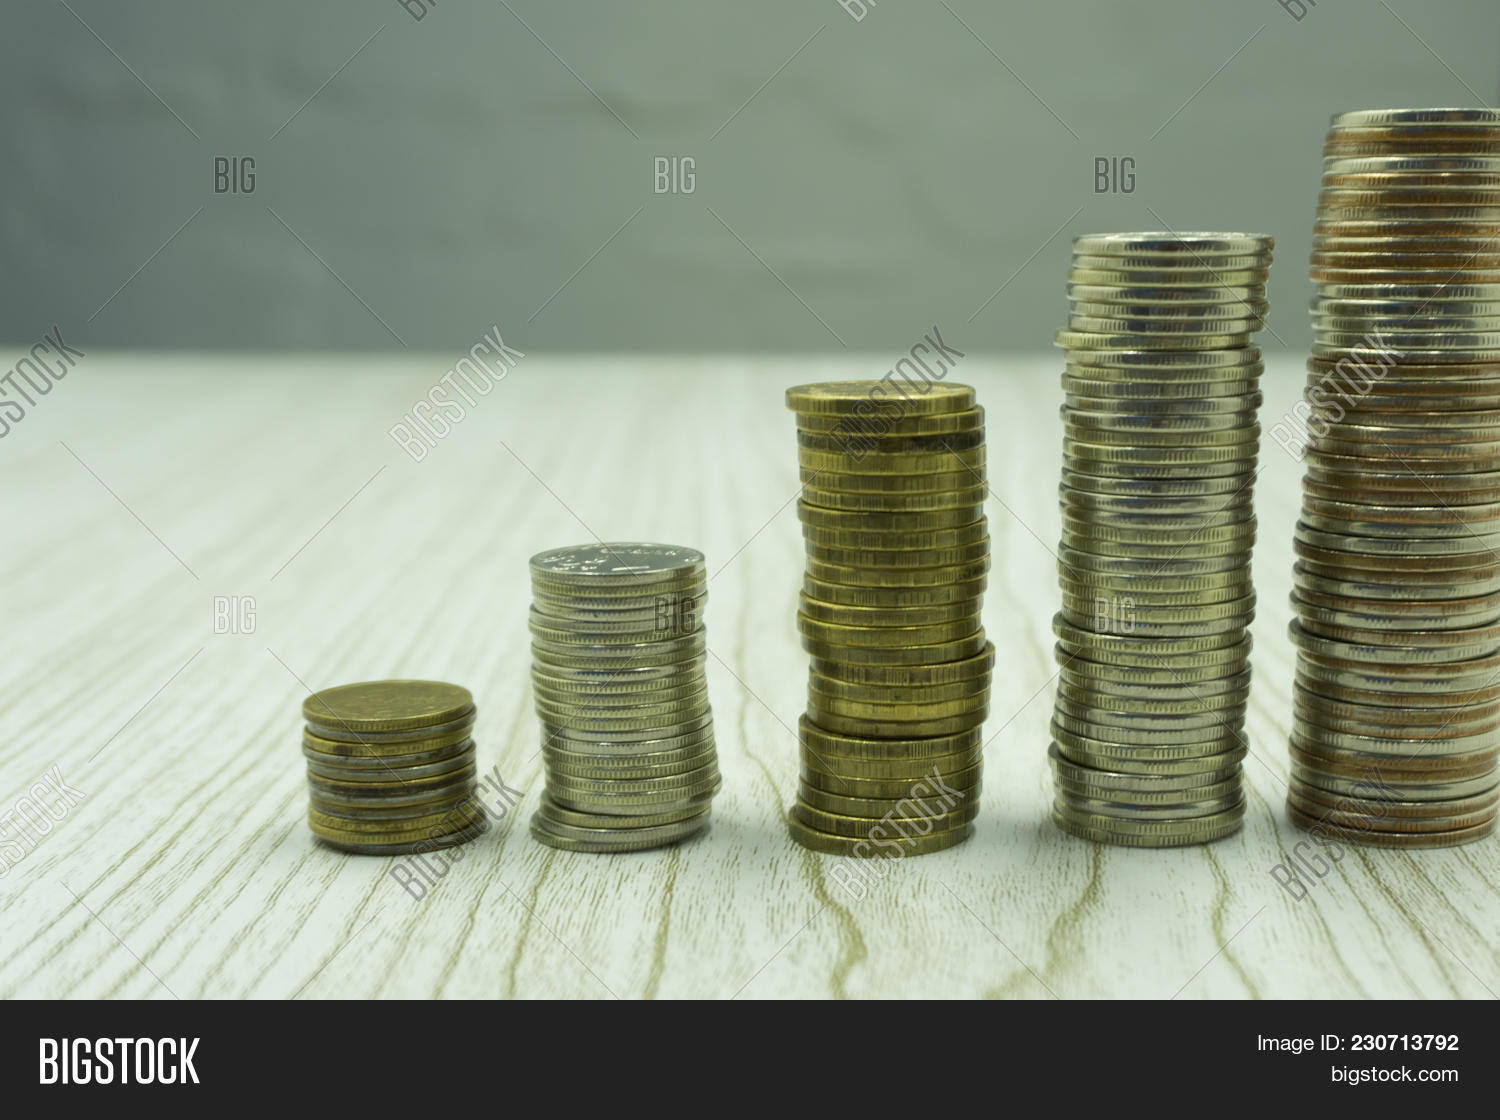 Silver Coins Columns Image Photo Free Trial Bigstock